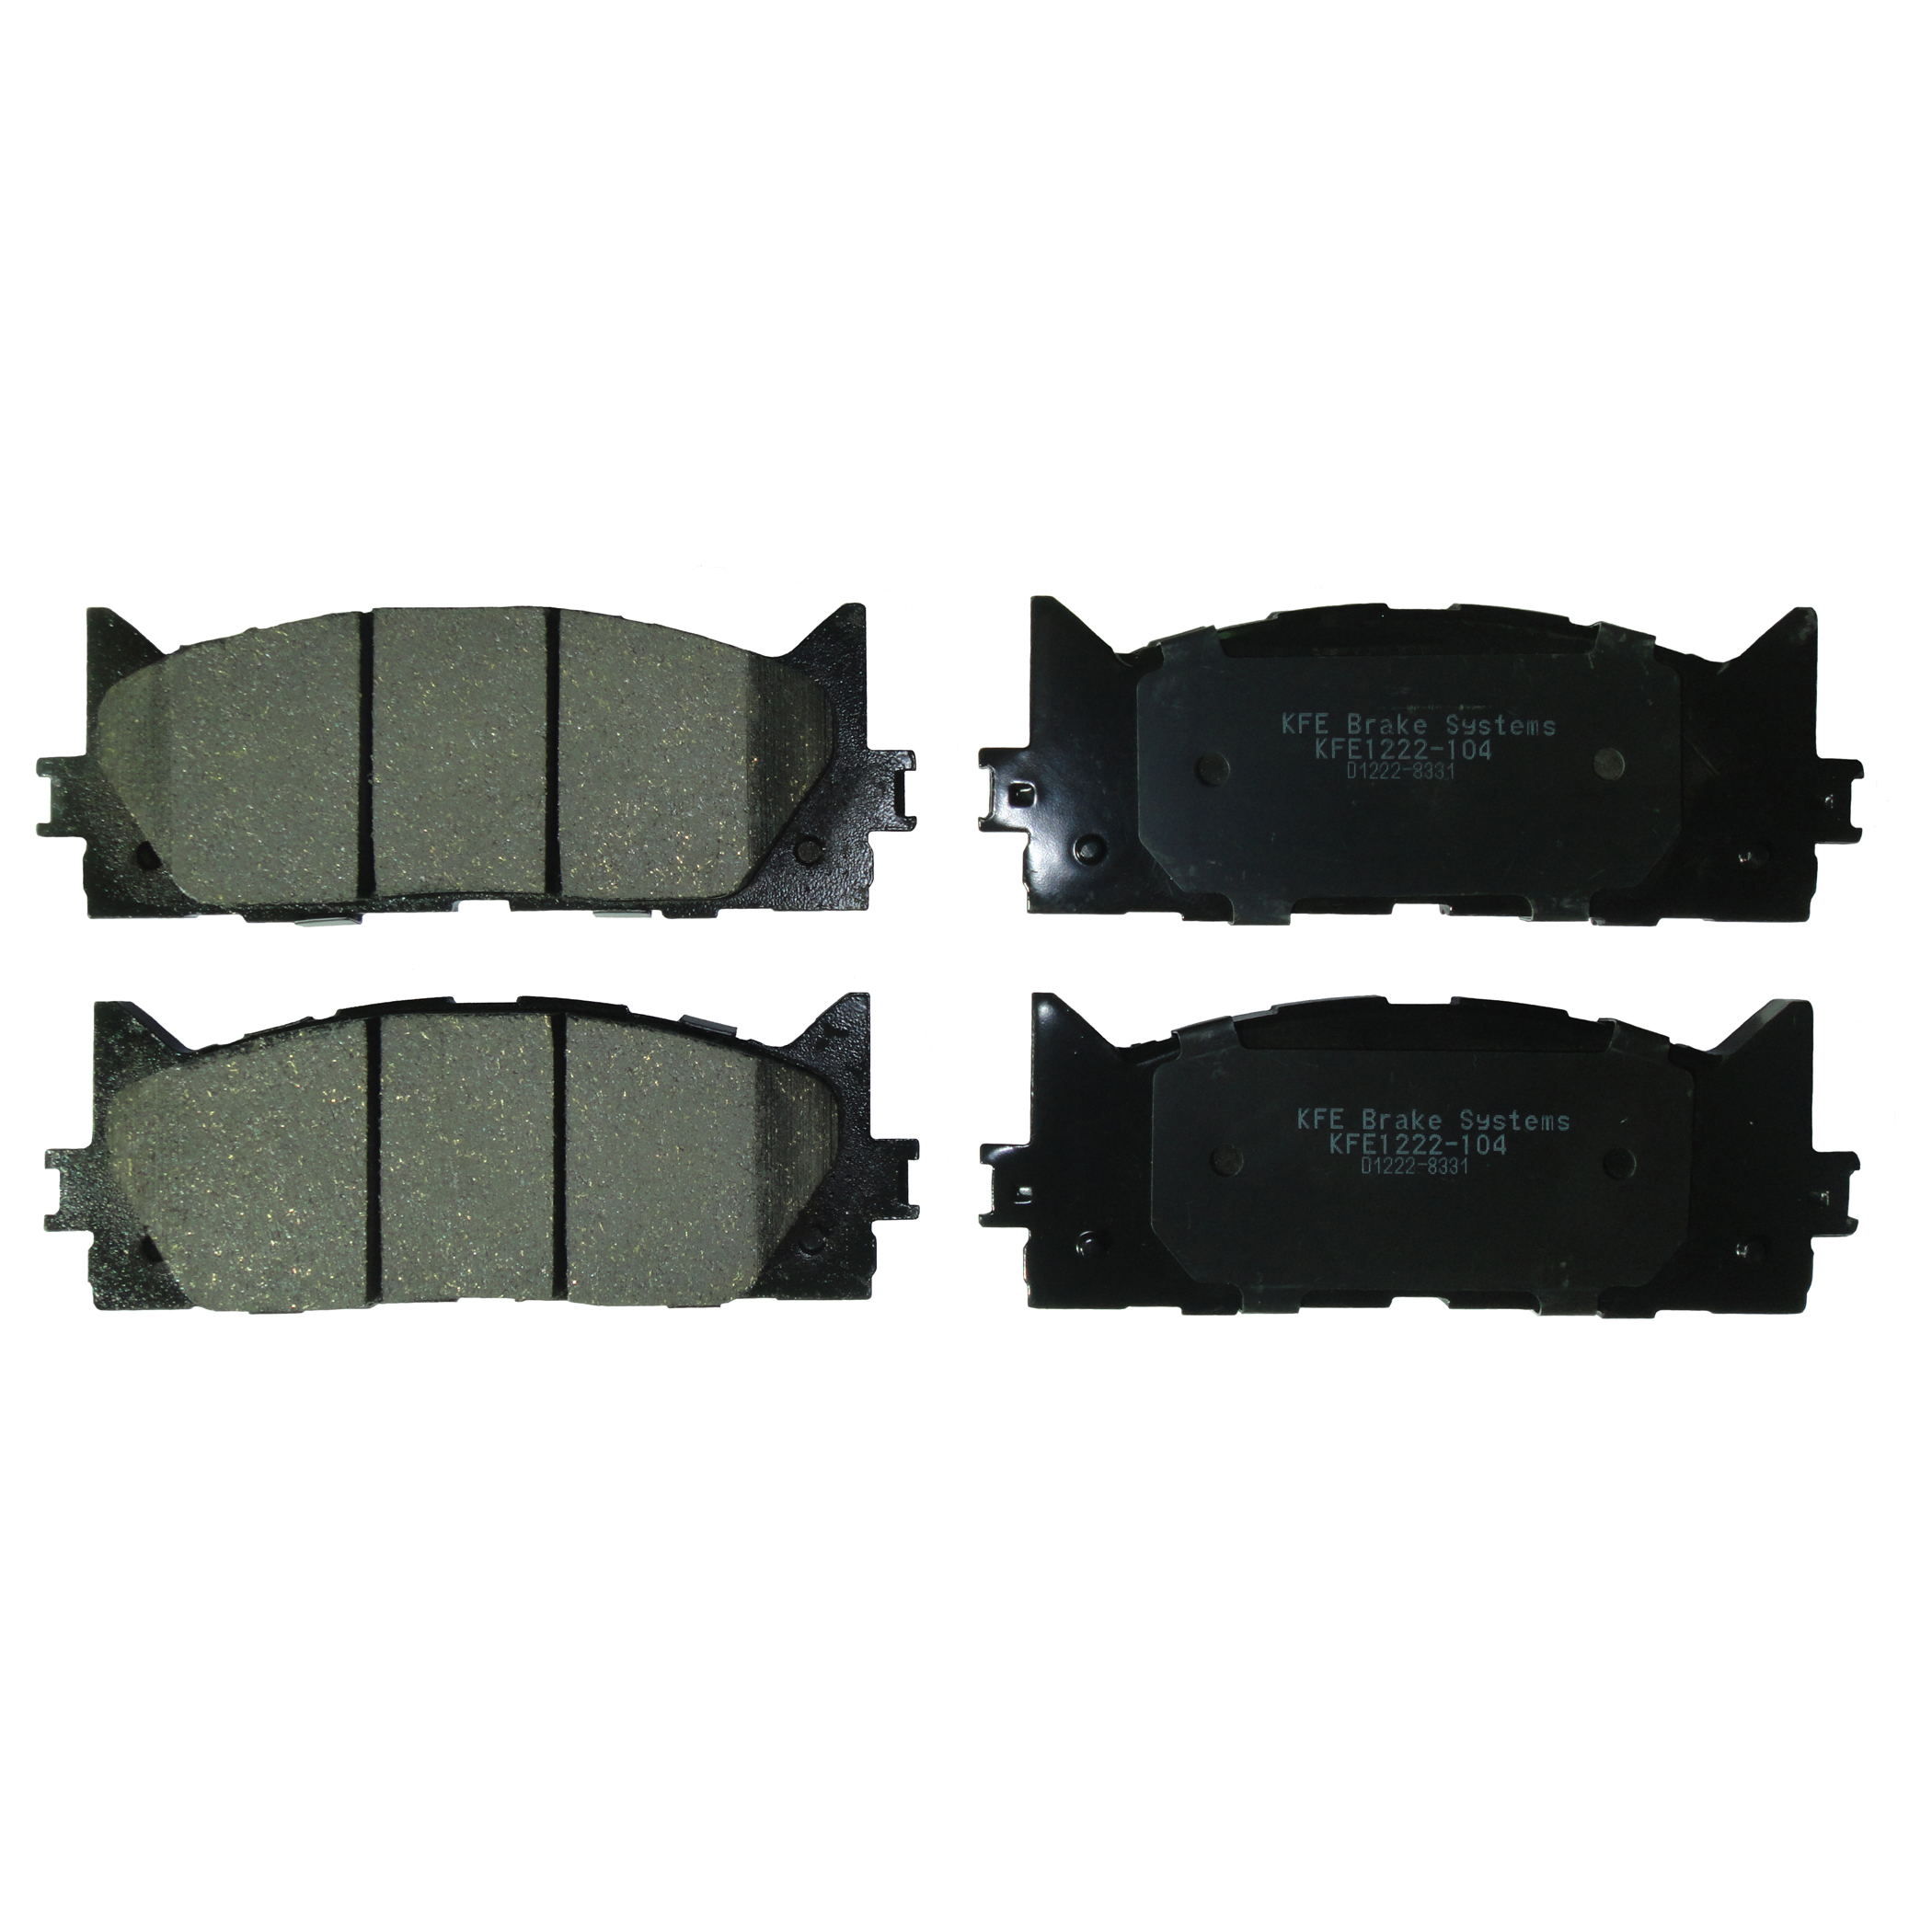 KFE1222-104 Ultra Quiet Advanced Brake Pad